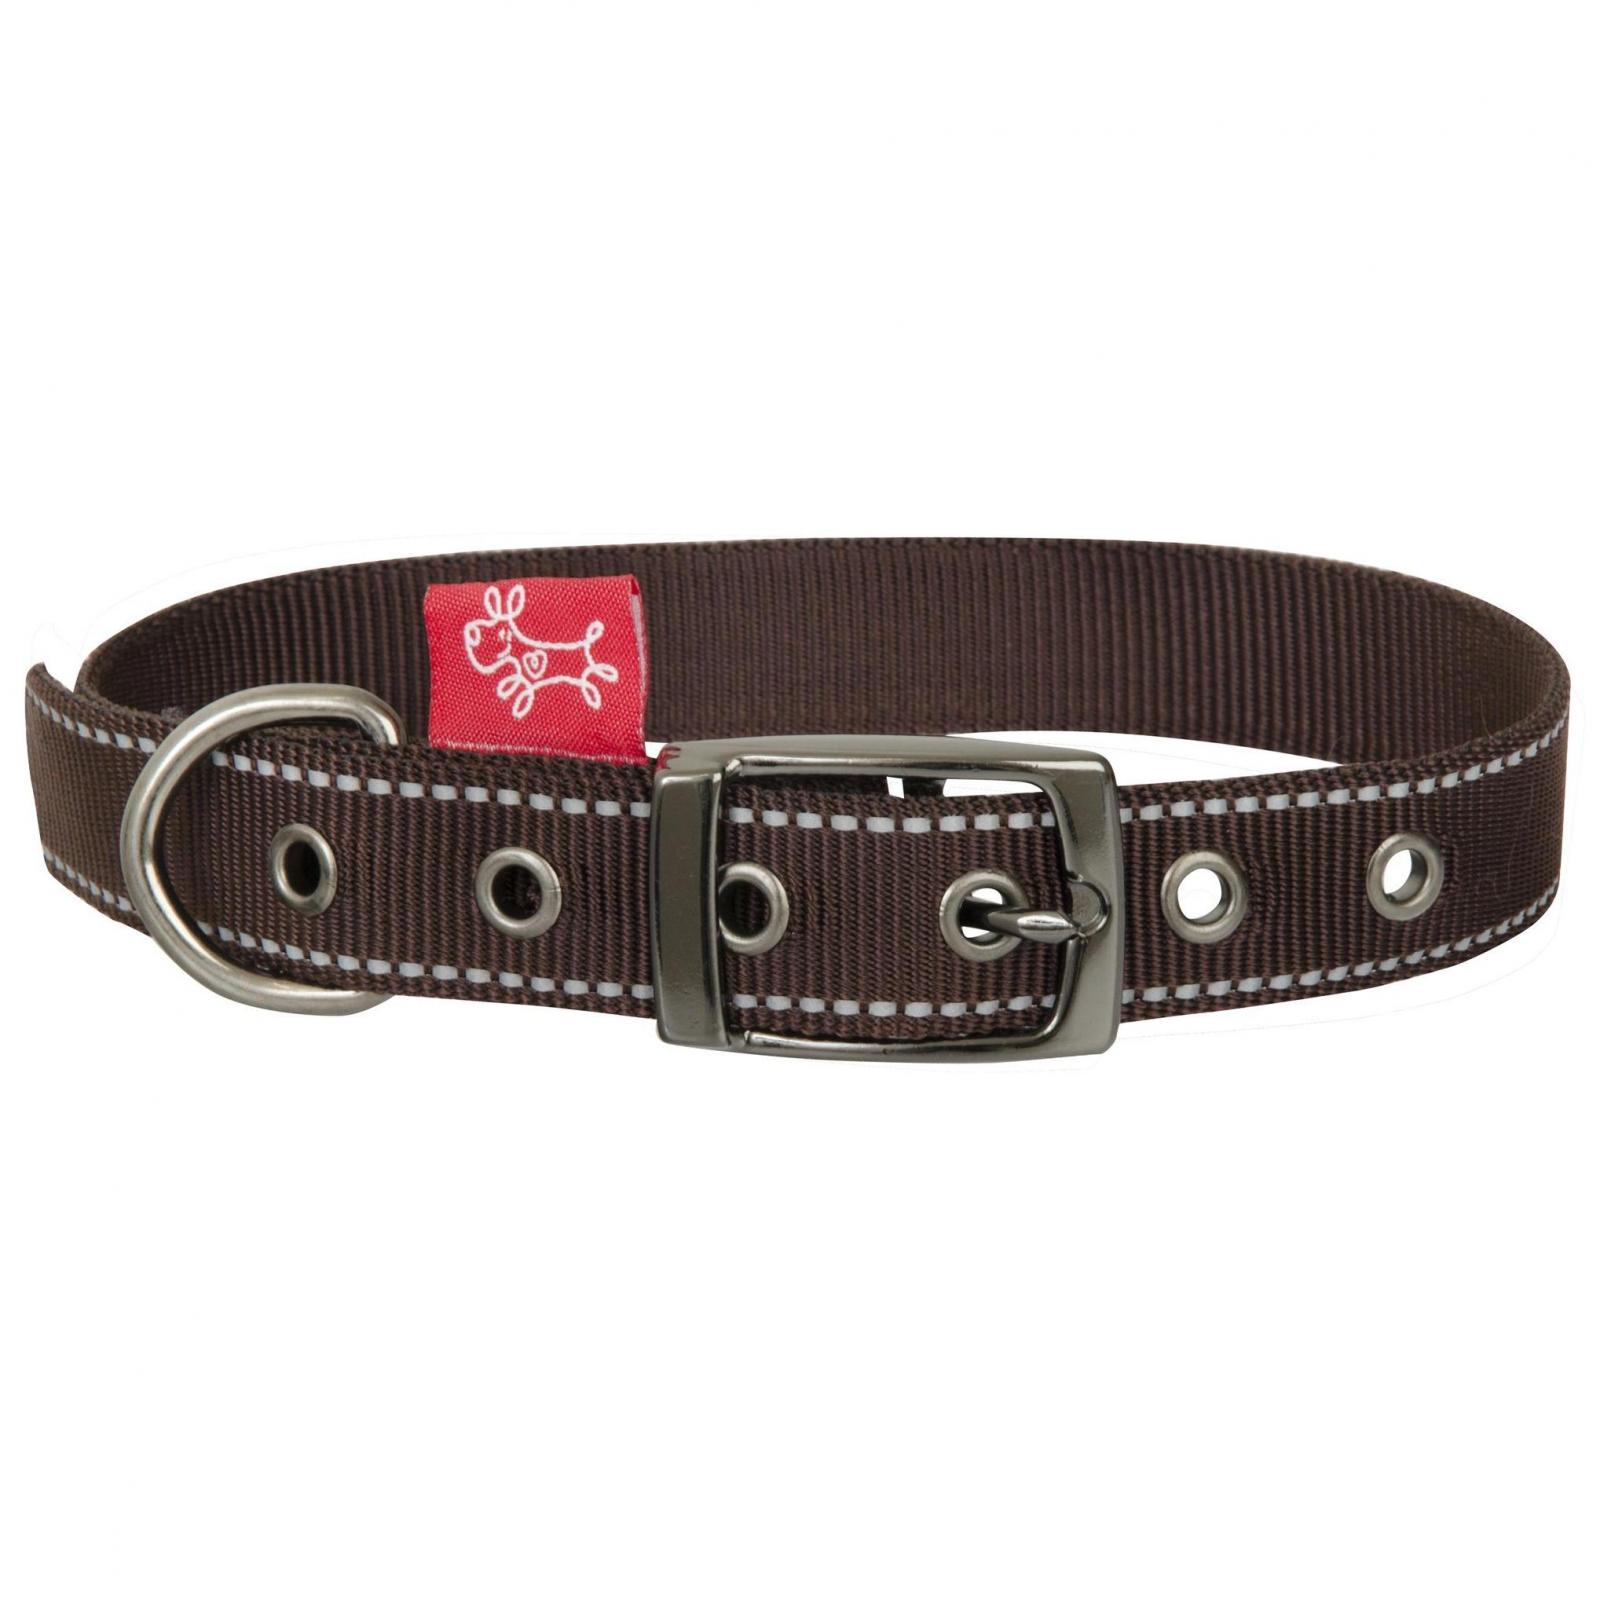 Yours Droolly Yours Droolly Reflective Buckle Collar Brown